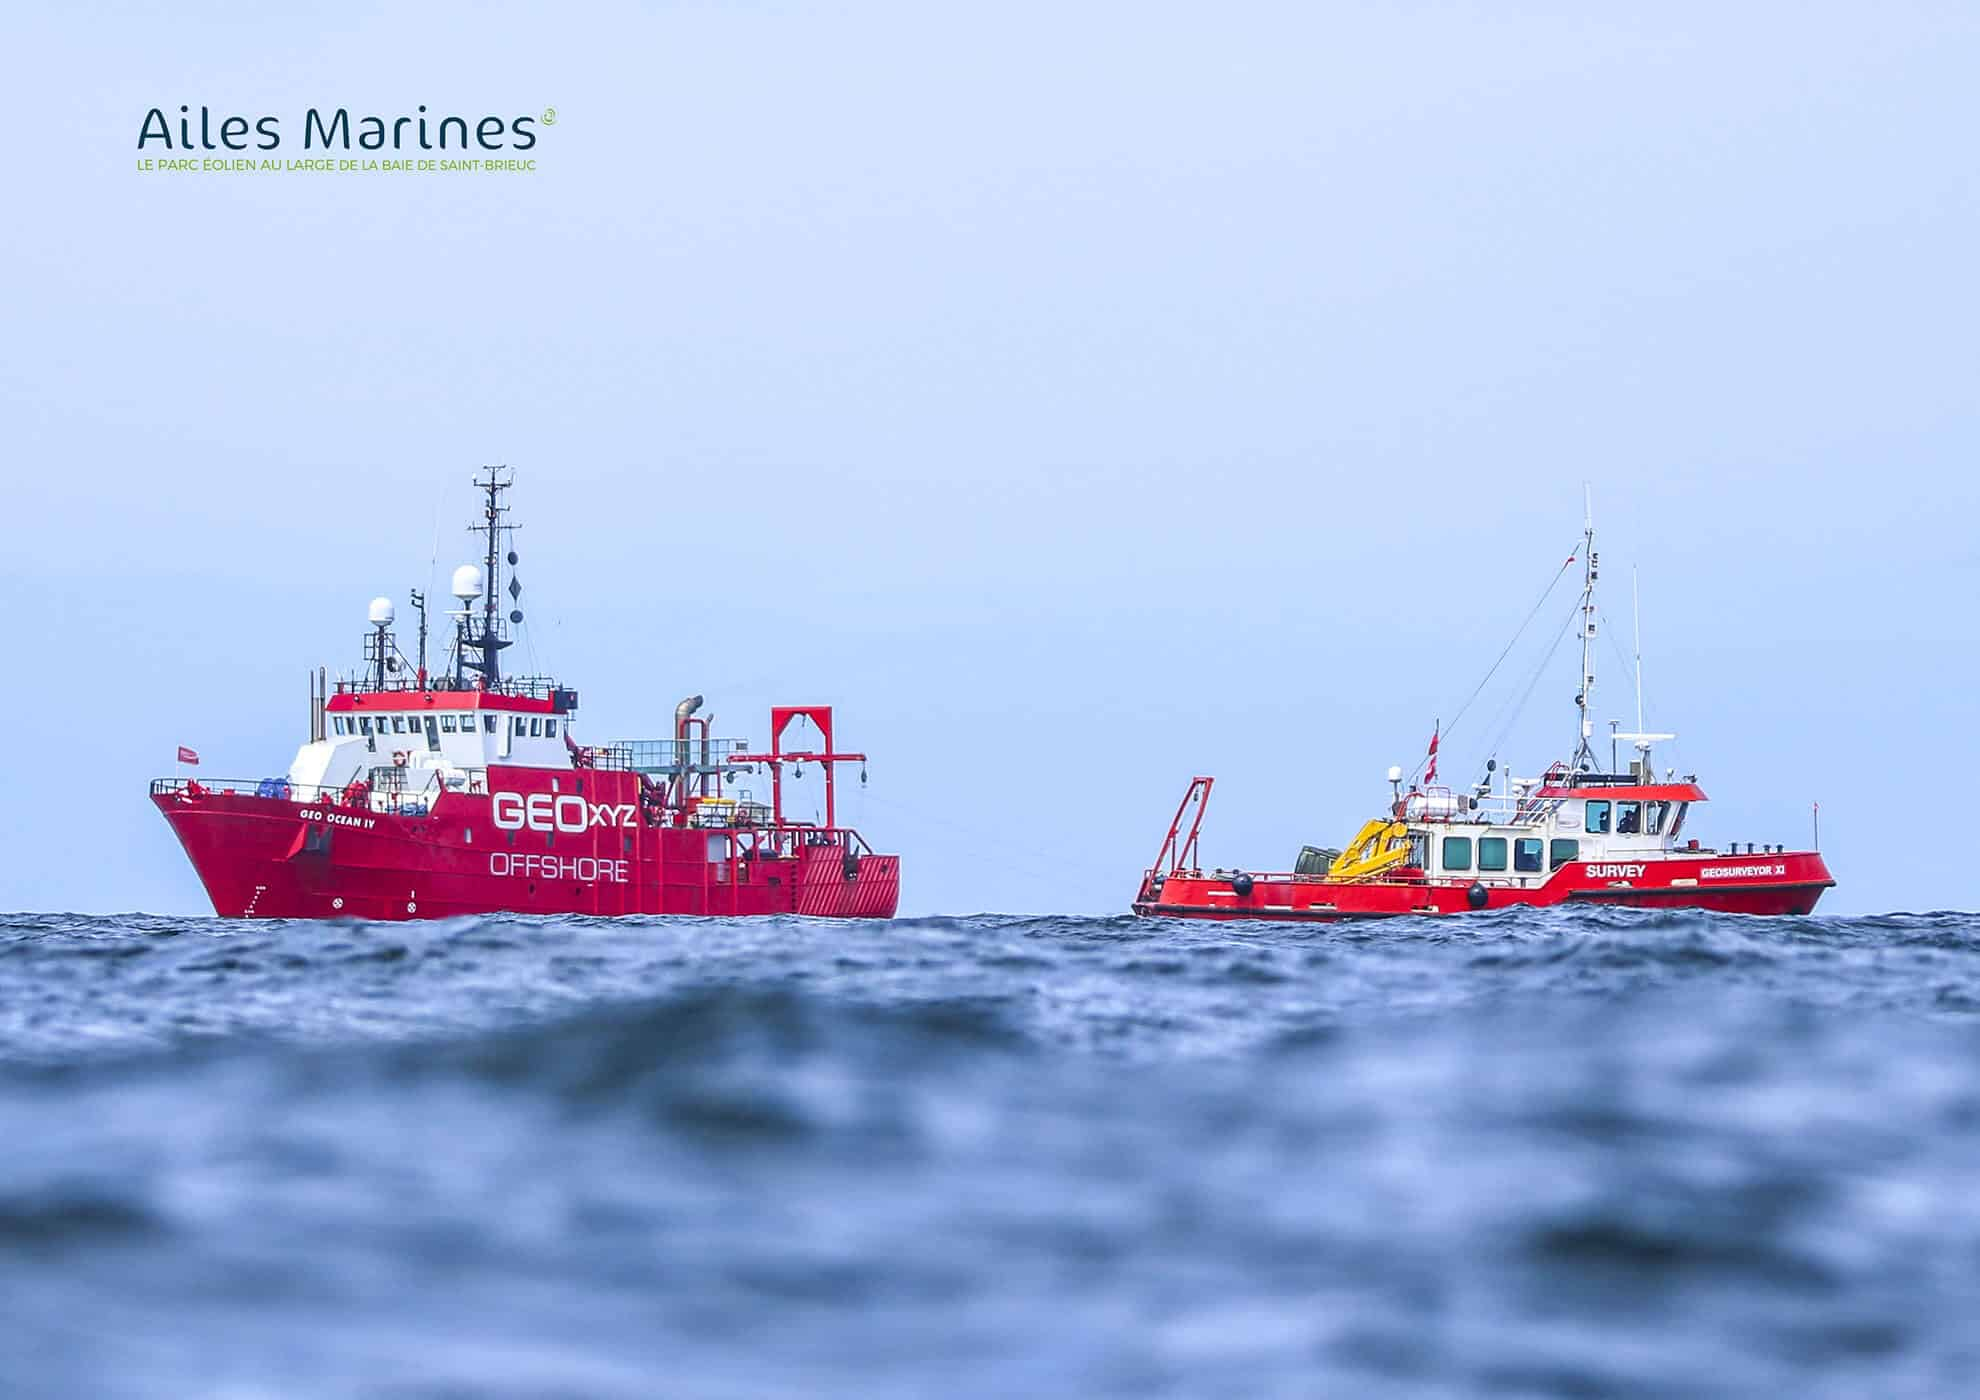 ailes-marines-offshore-boats